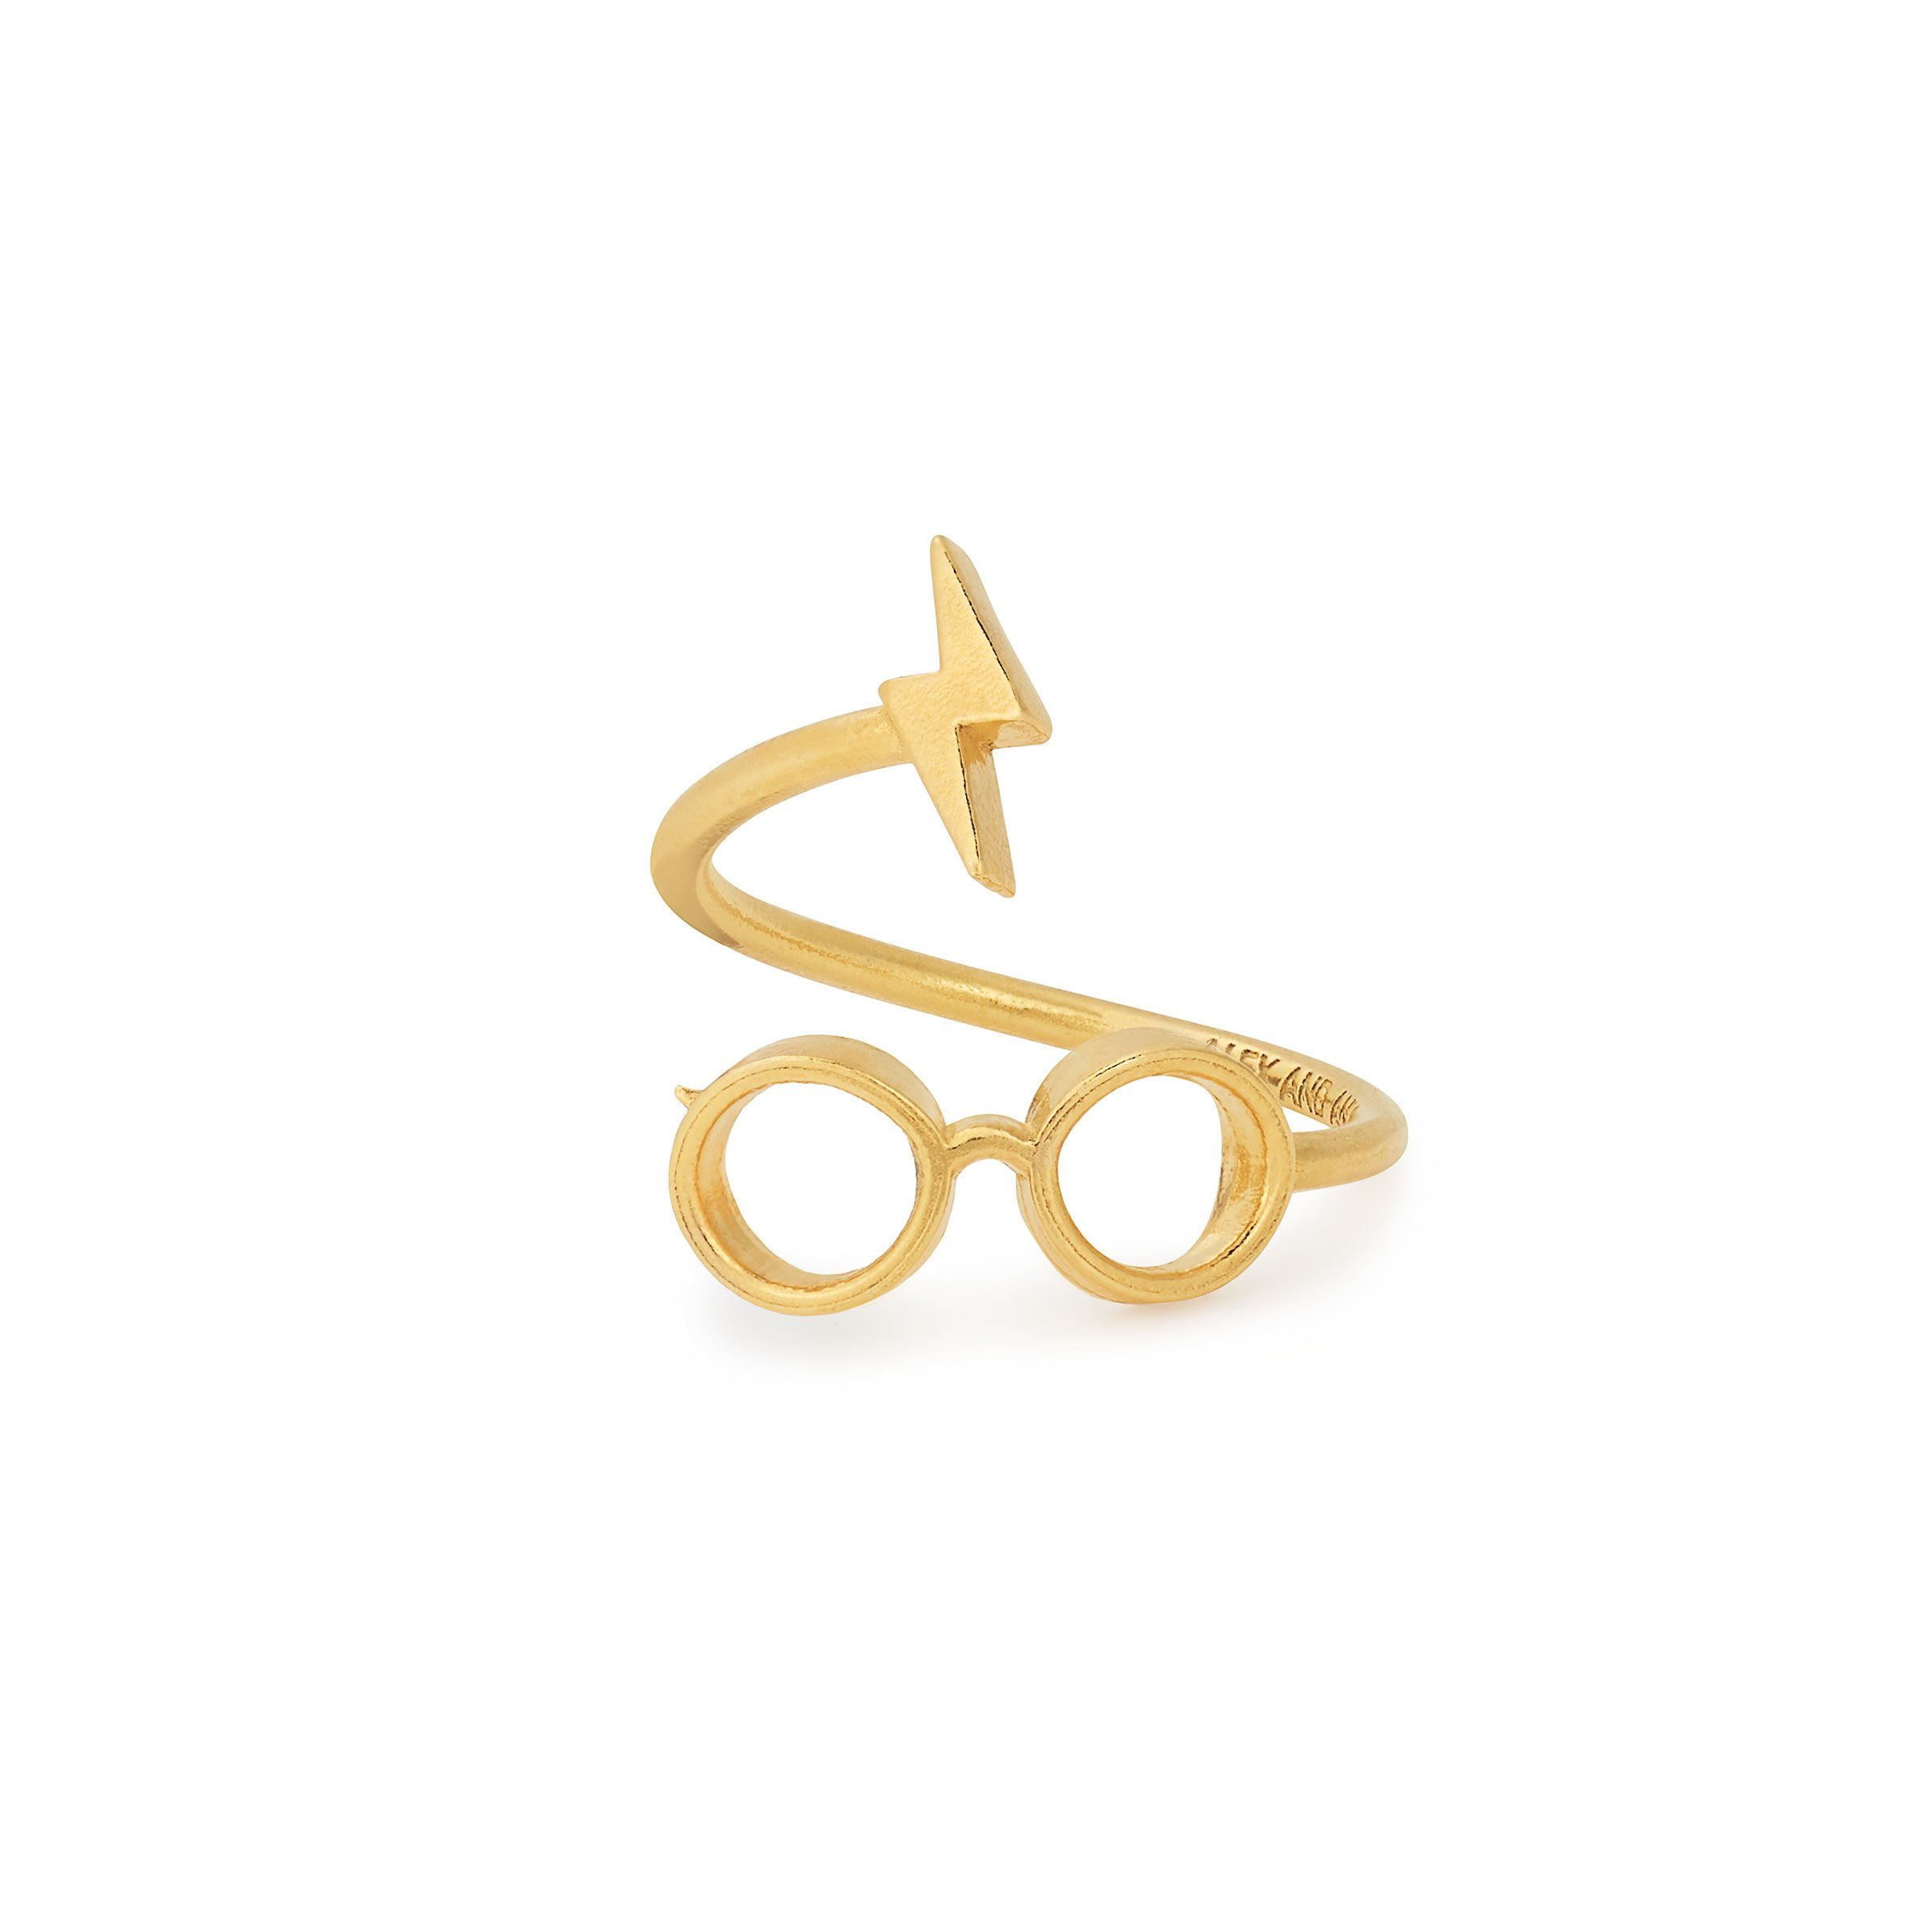 Alex and Ani Women's Harry Potter Glasses Ring Wrap 14kt Gold Plated One Size